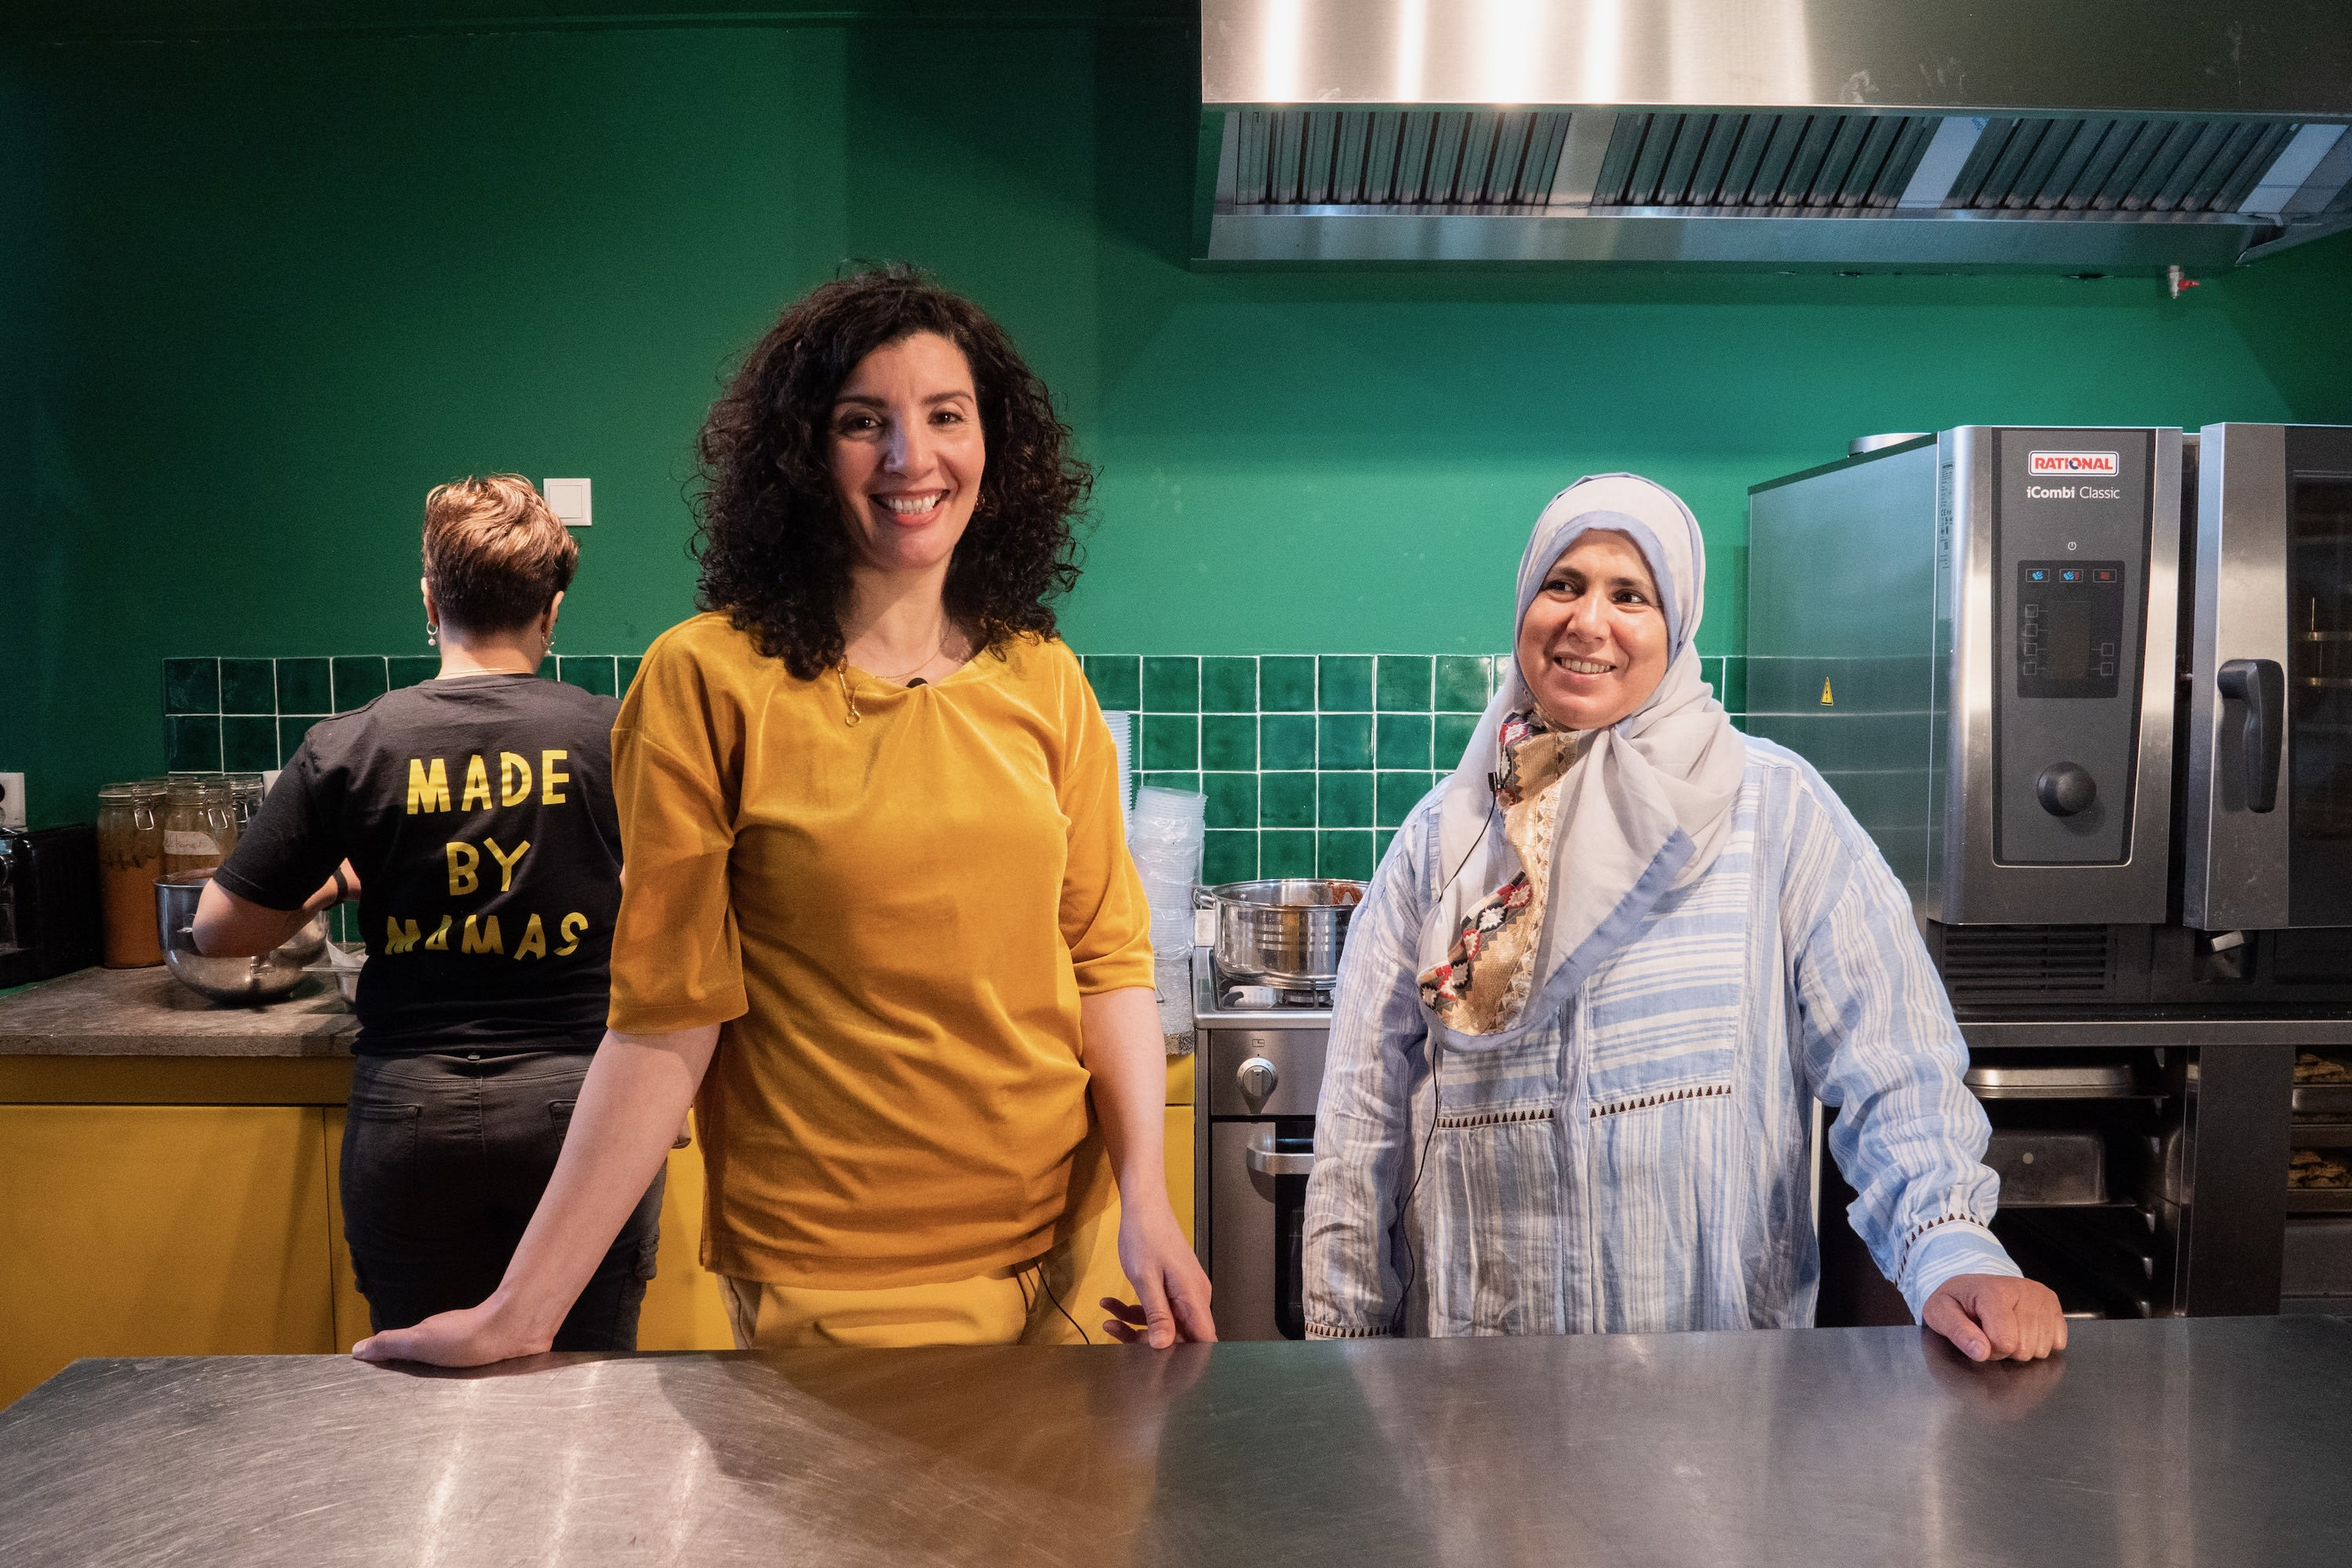 The women behind the Moroccan social enterprise, the Couscous bar in Amsterdam